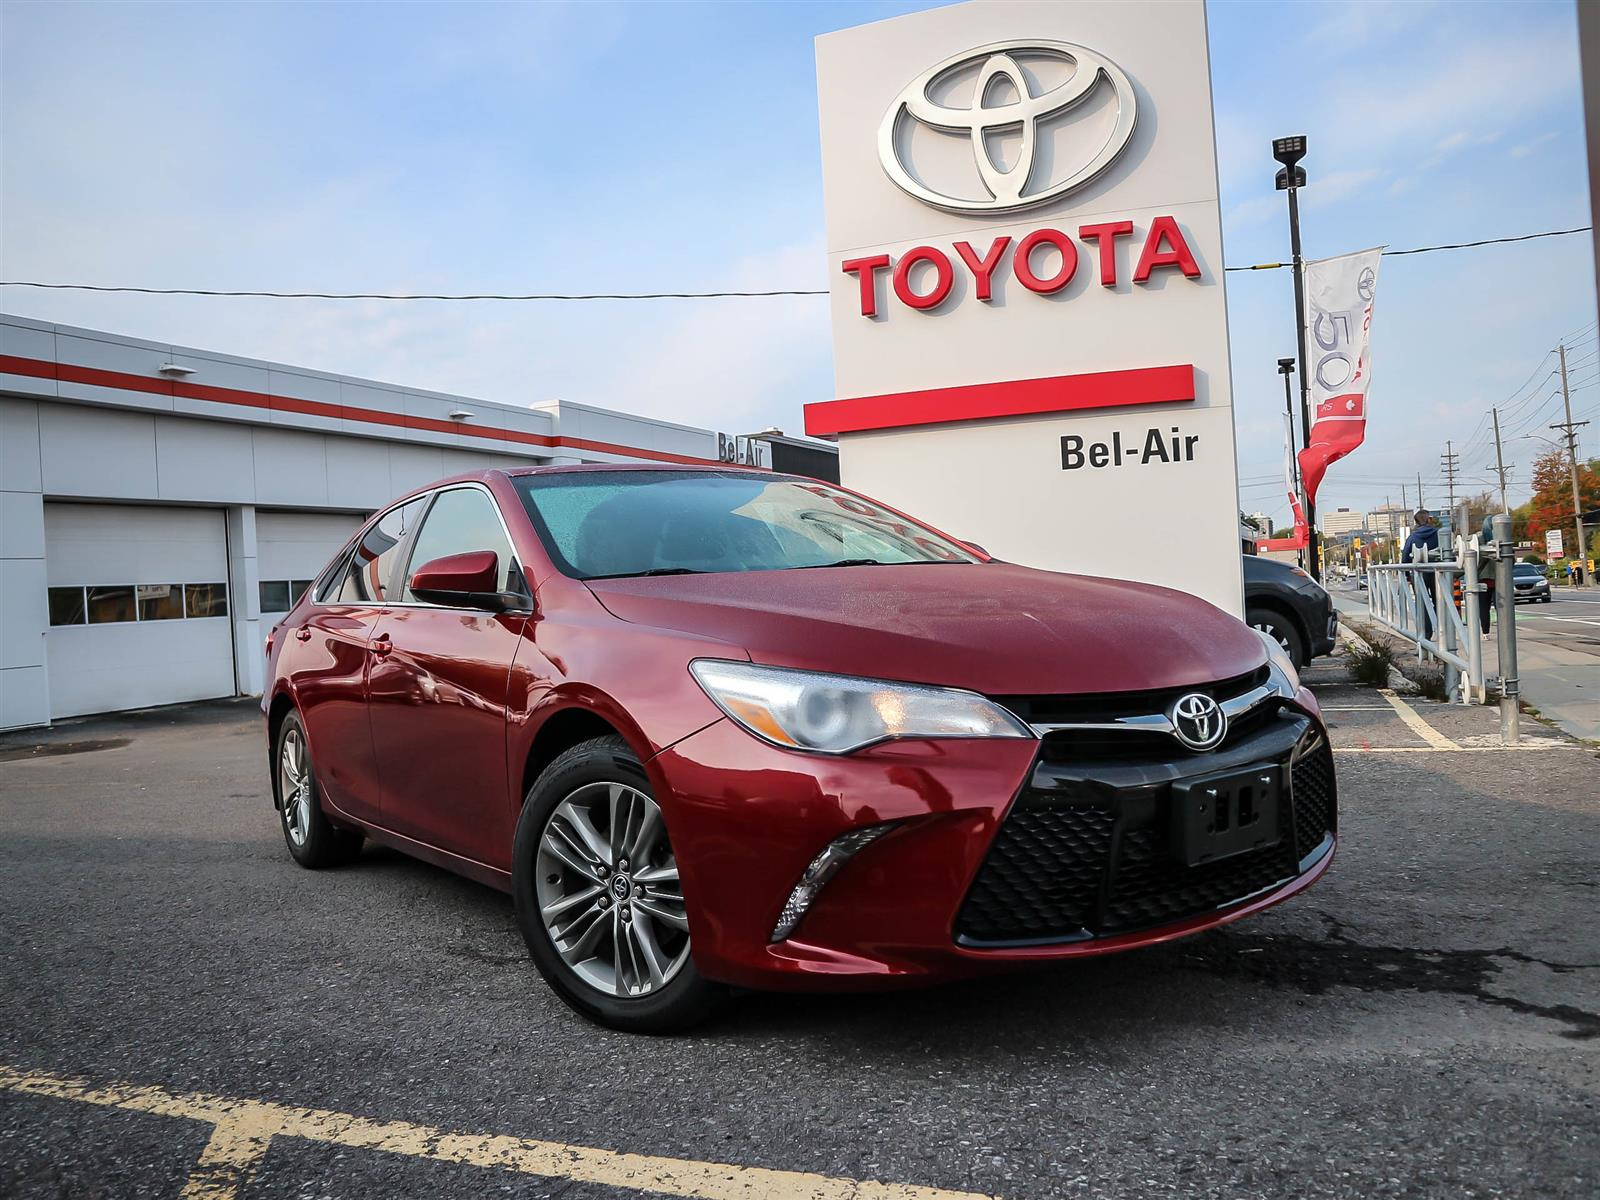 2015 Toyota Camry at Bel-Air Toyota